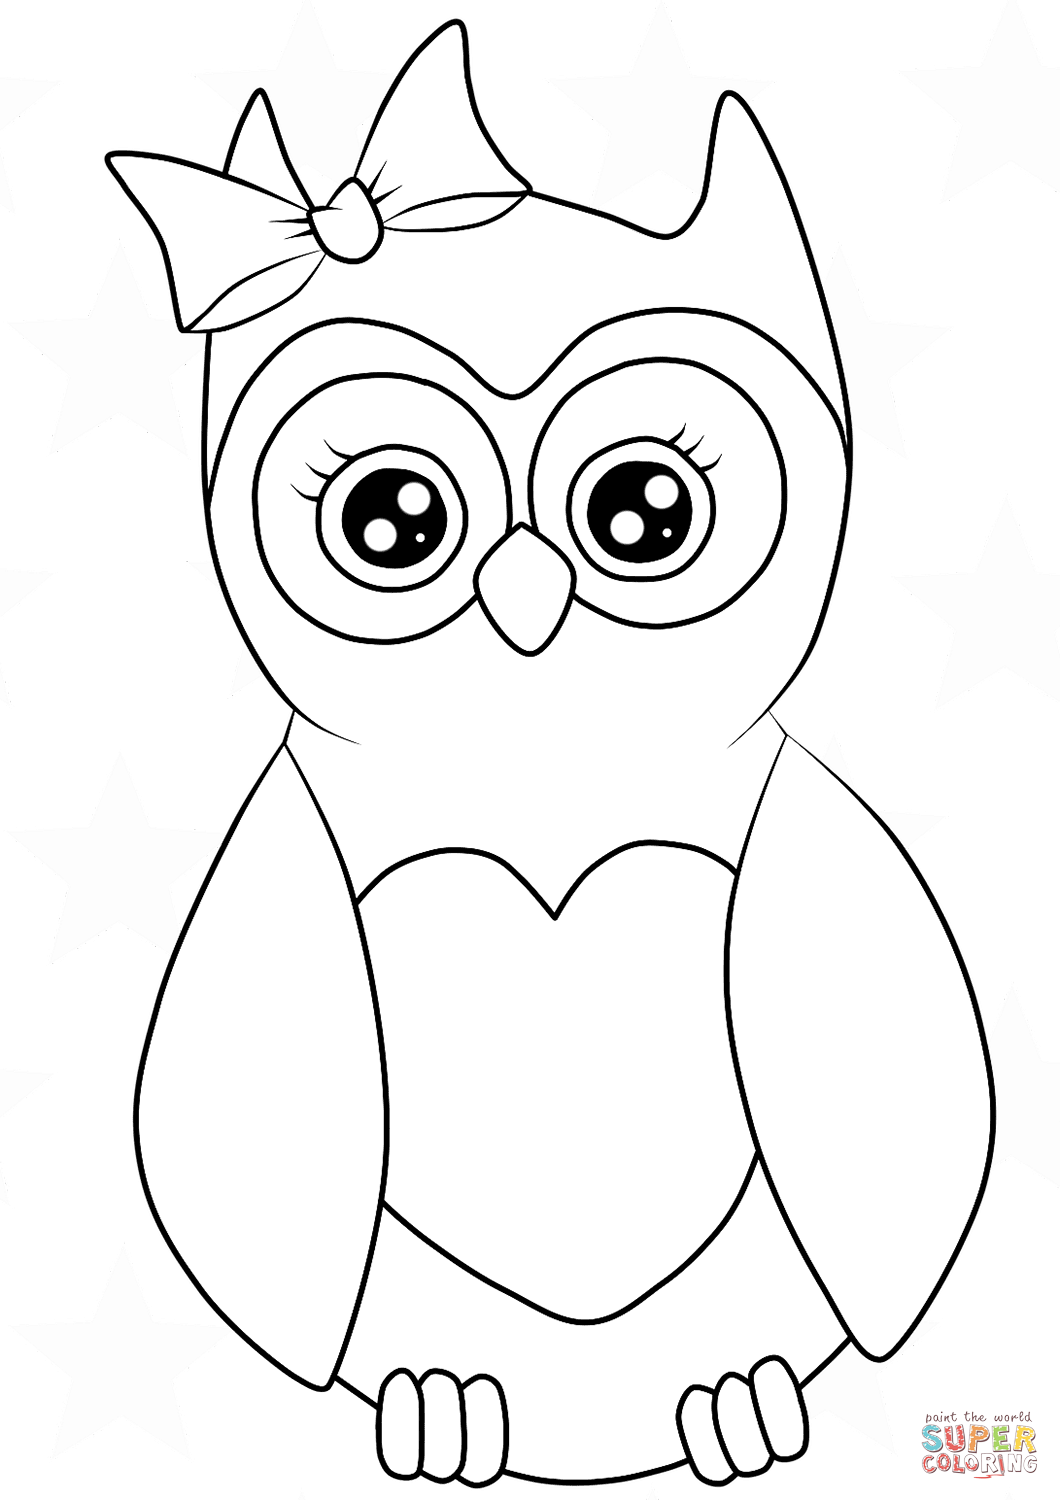 colouring picture of owl owl coloring pages owl coloring pages picture owl colouring of